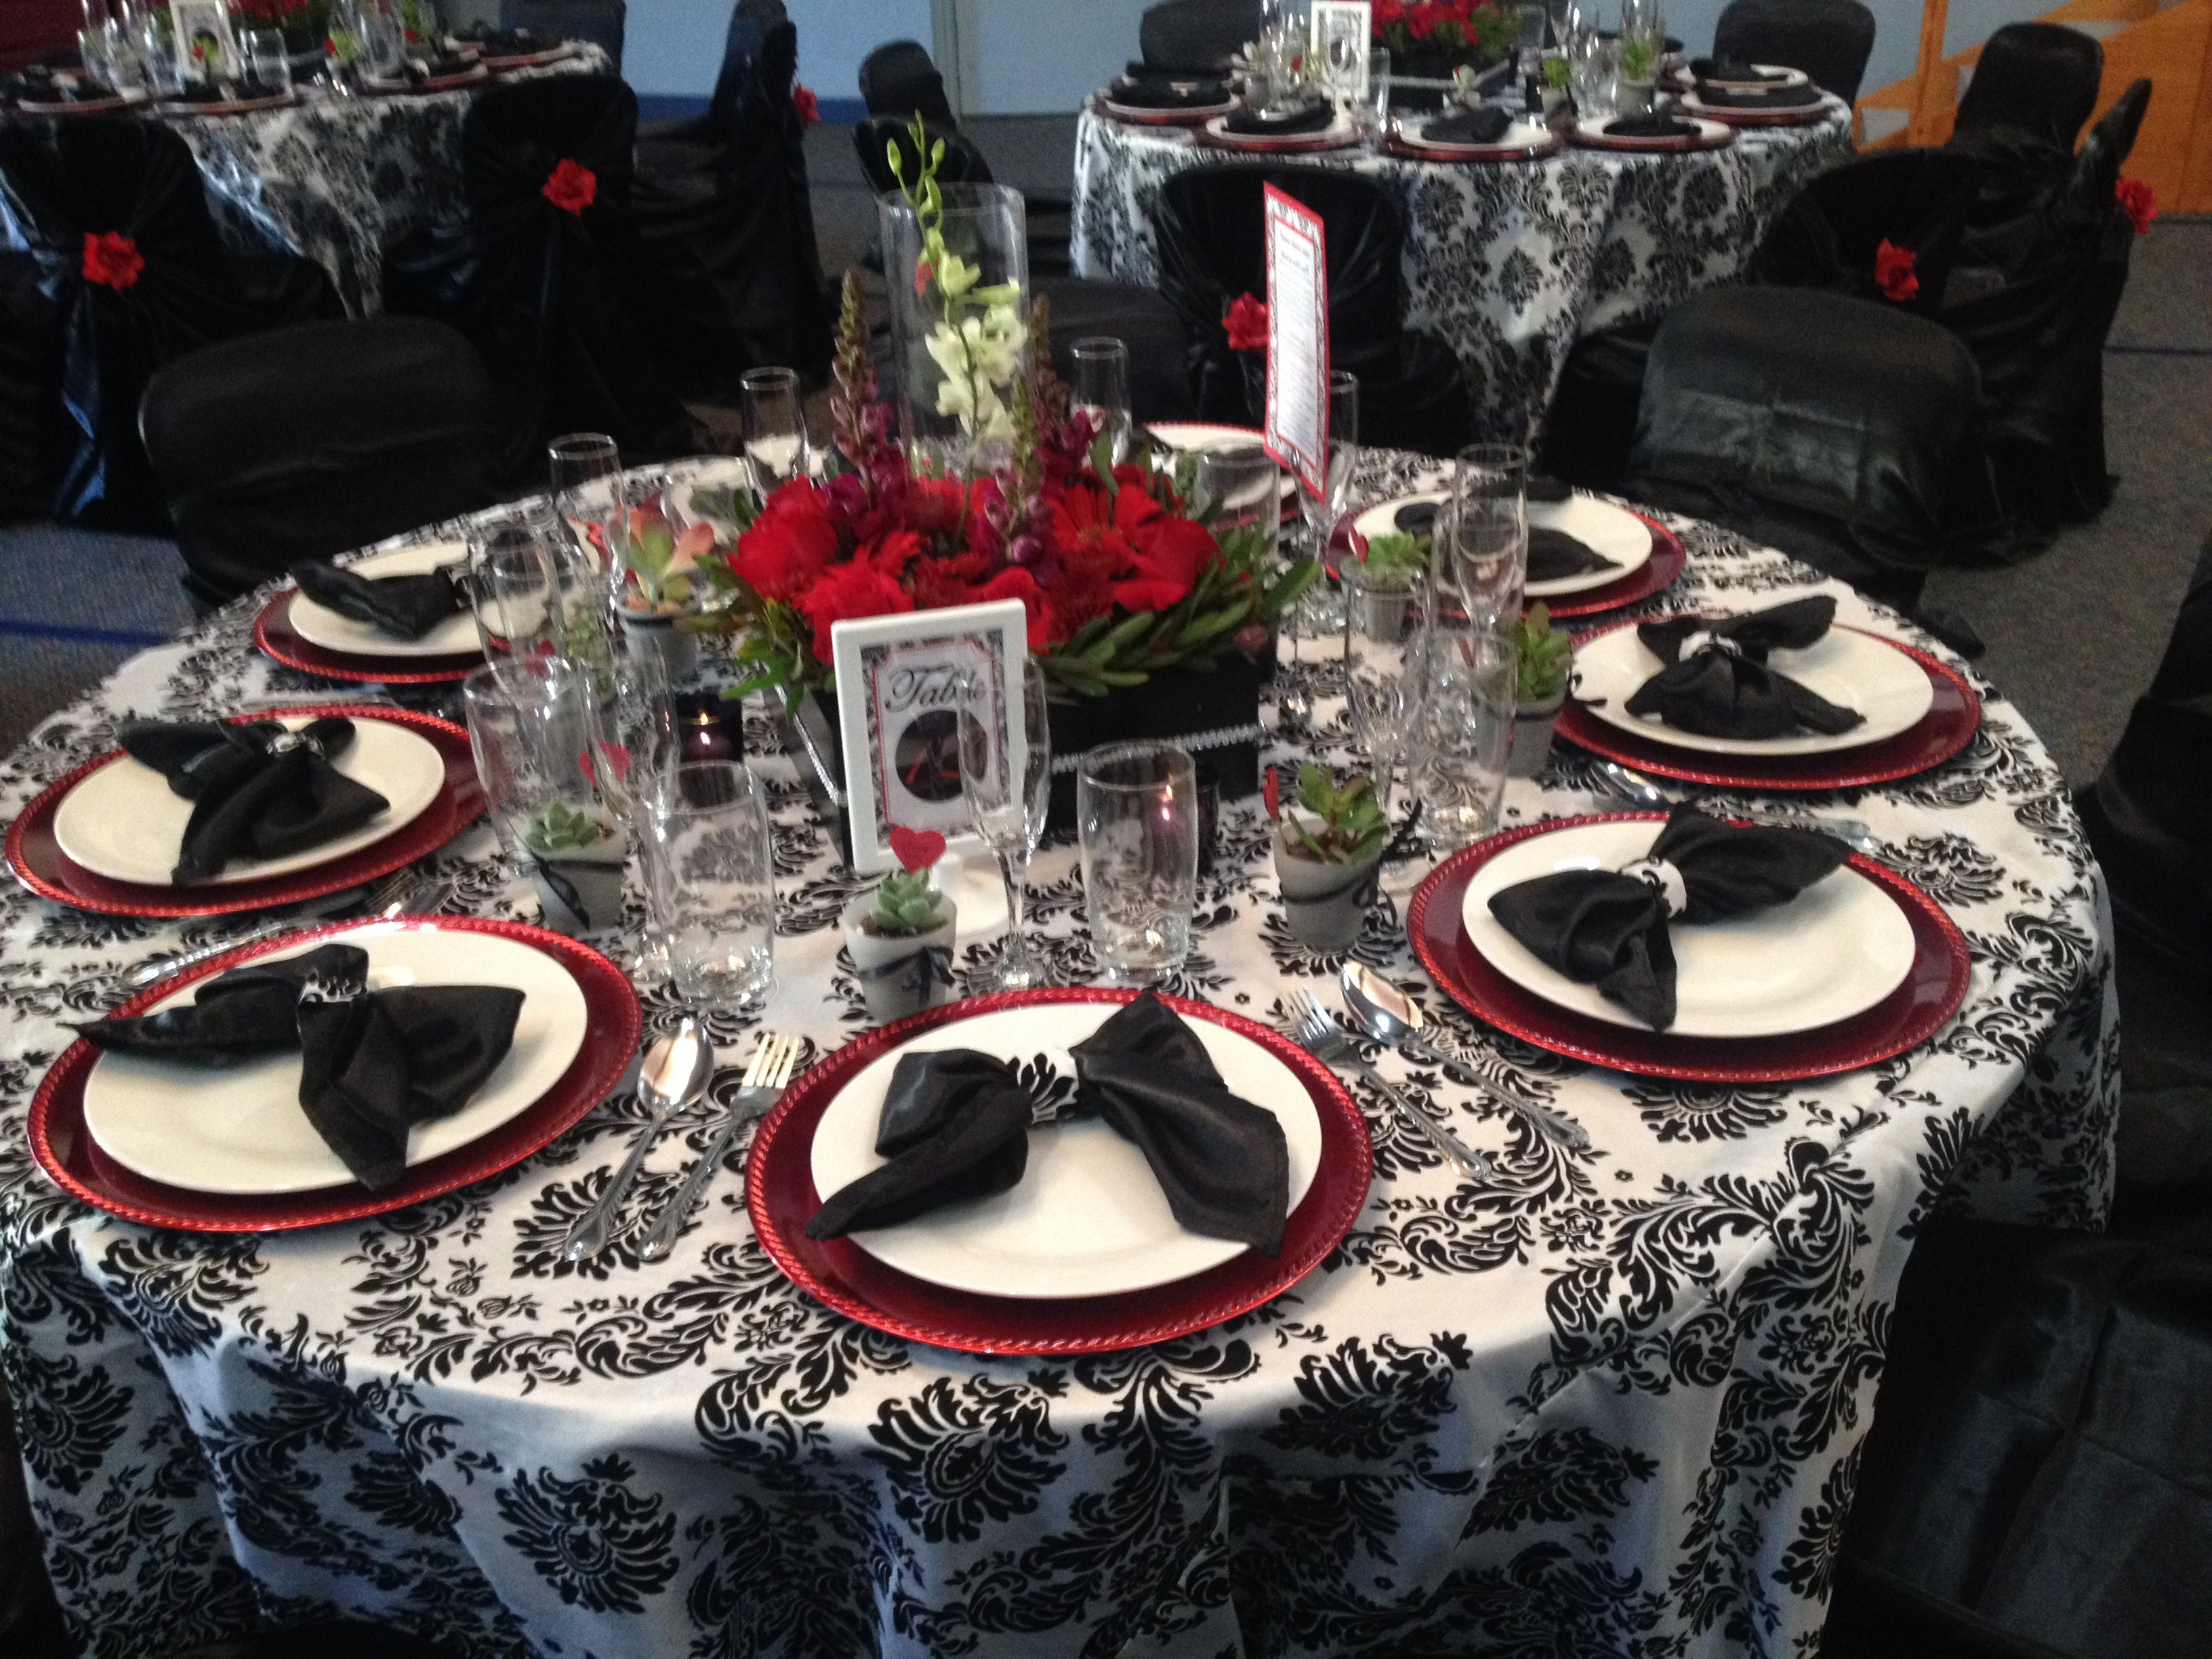 Damask Black And White Decor Tablecloths Candles